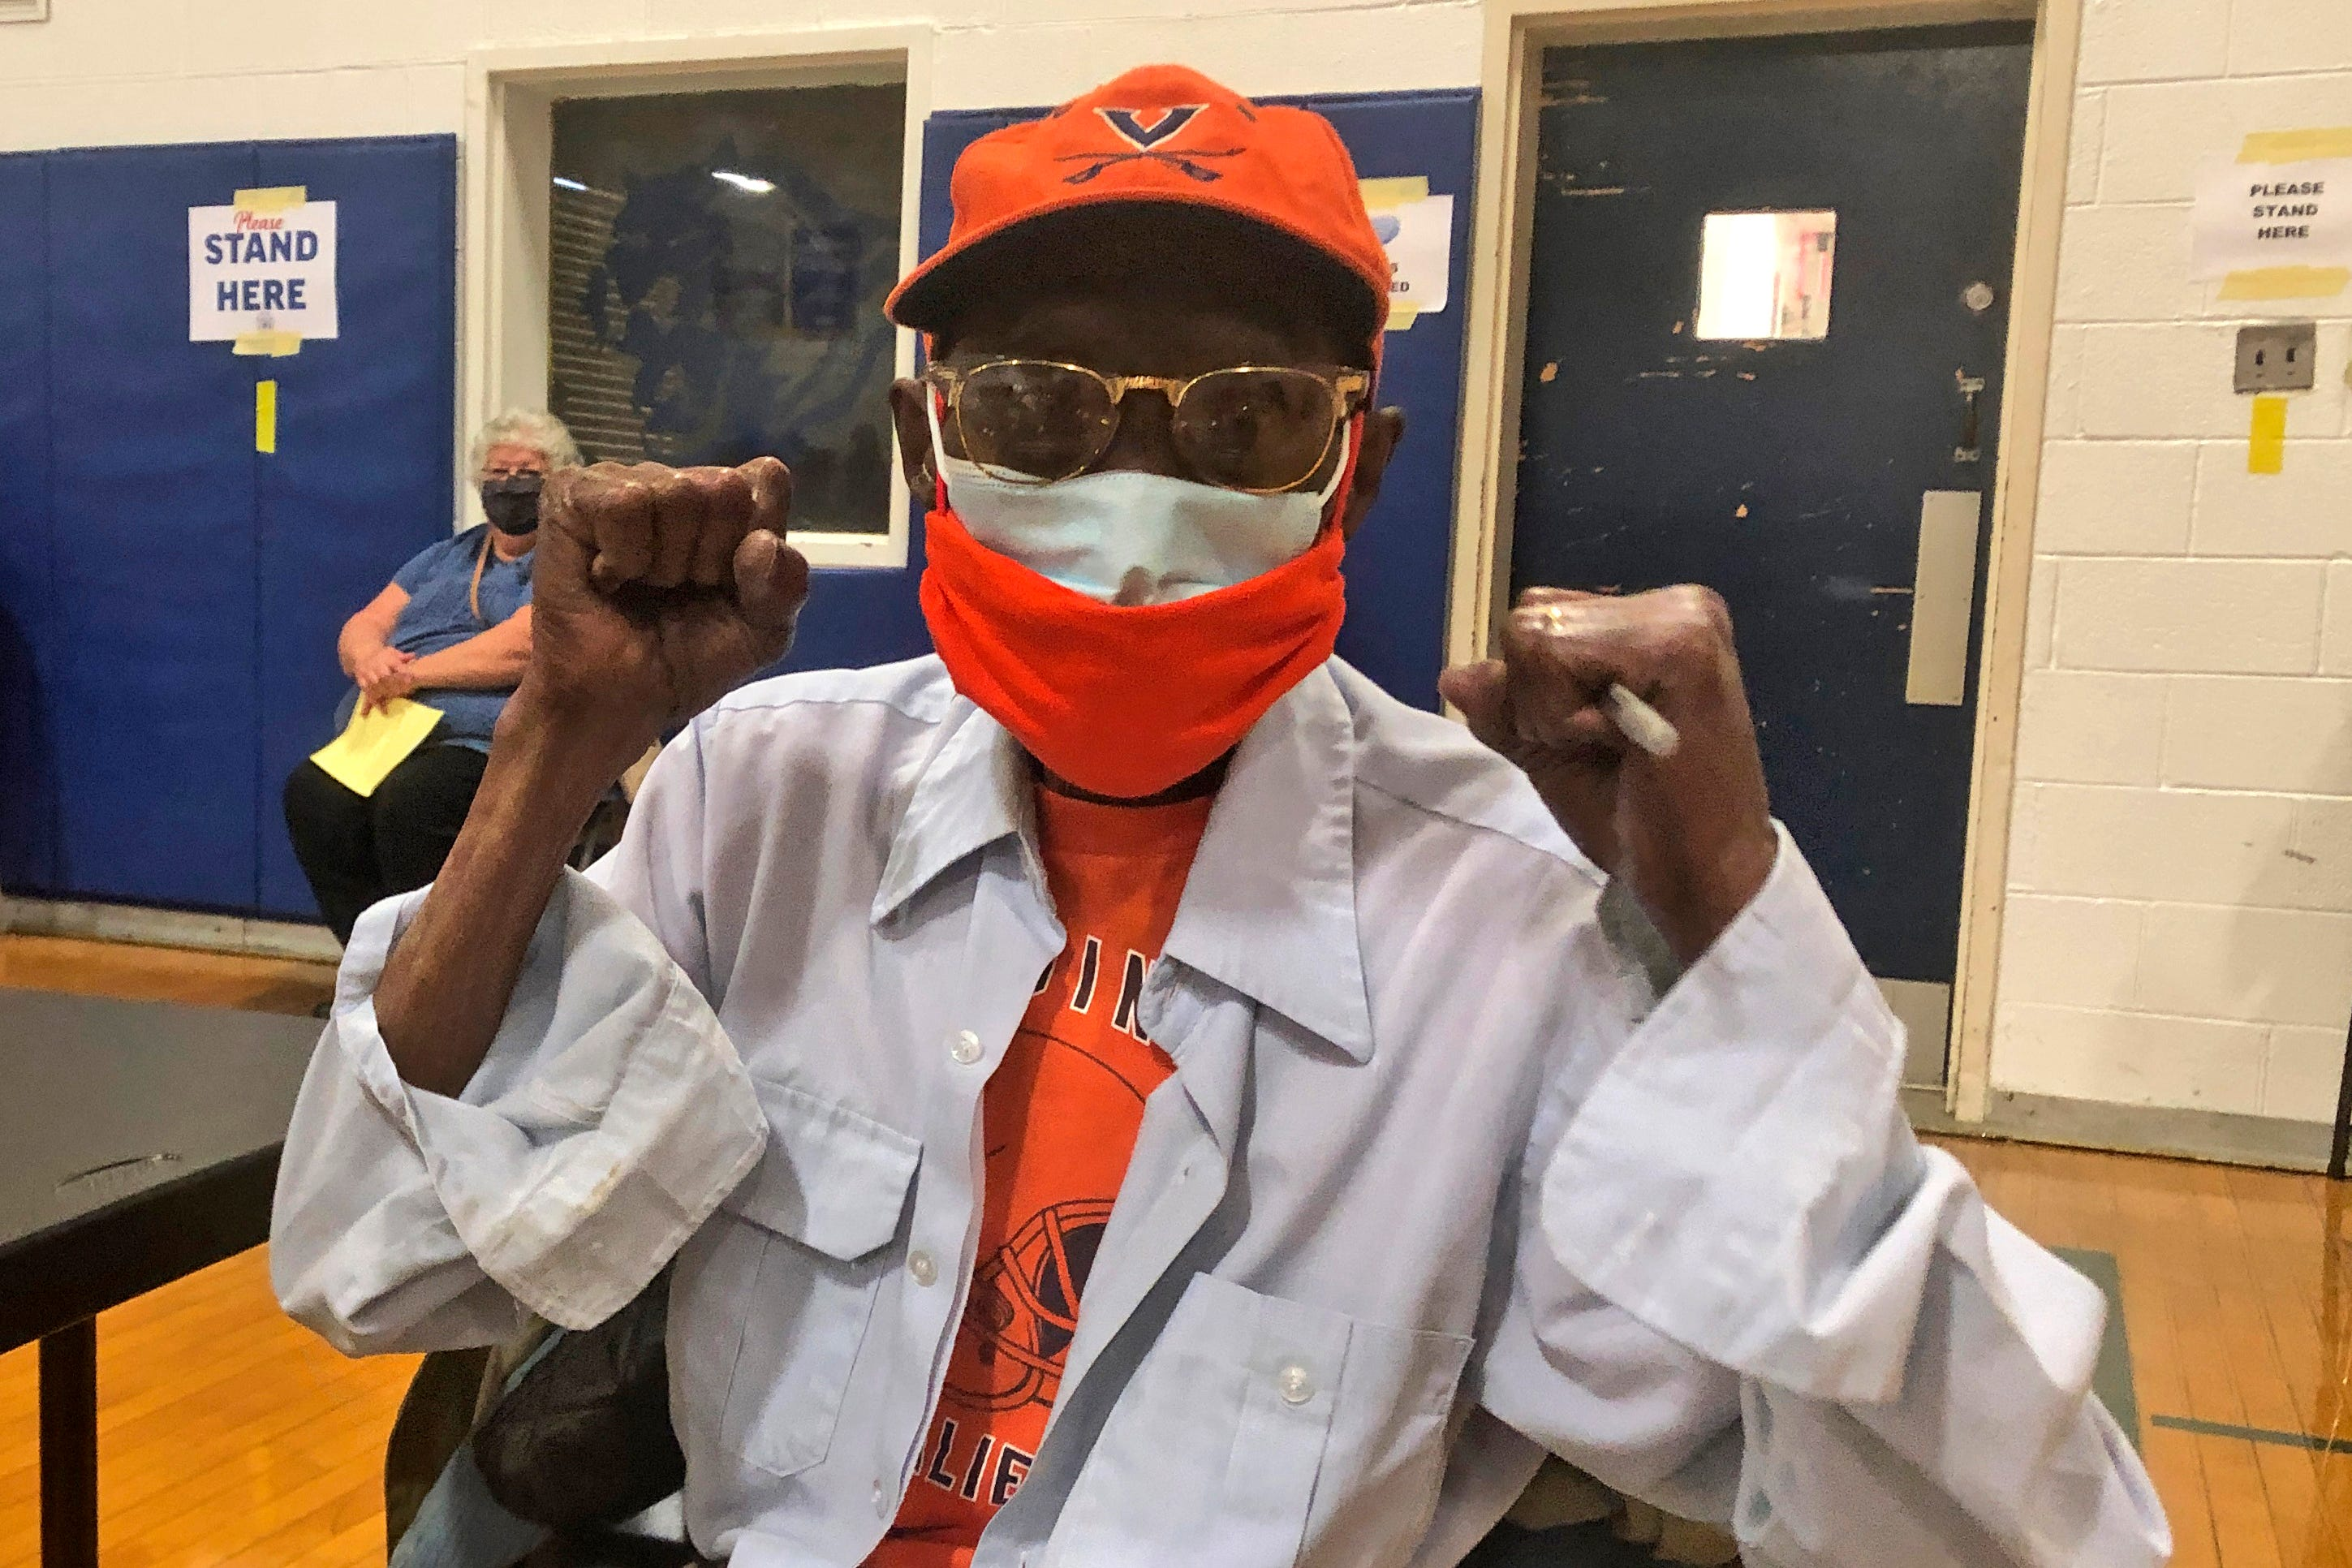 Charles Robbins celebrates getting his second shot of coronavirus vaccine at Surry County High School in Dendron, Va., on Saturday, Feb. 27, 2021.